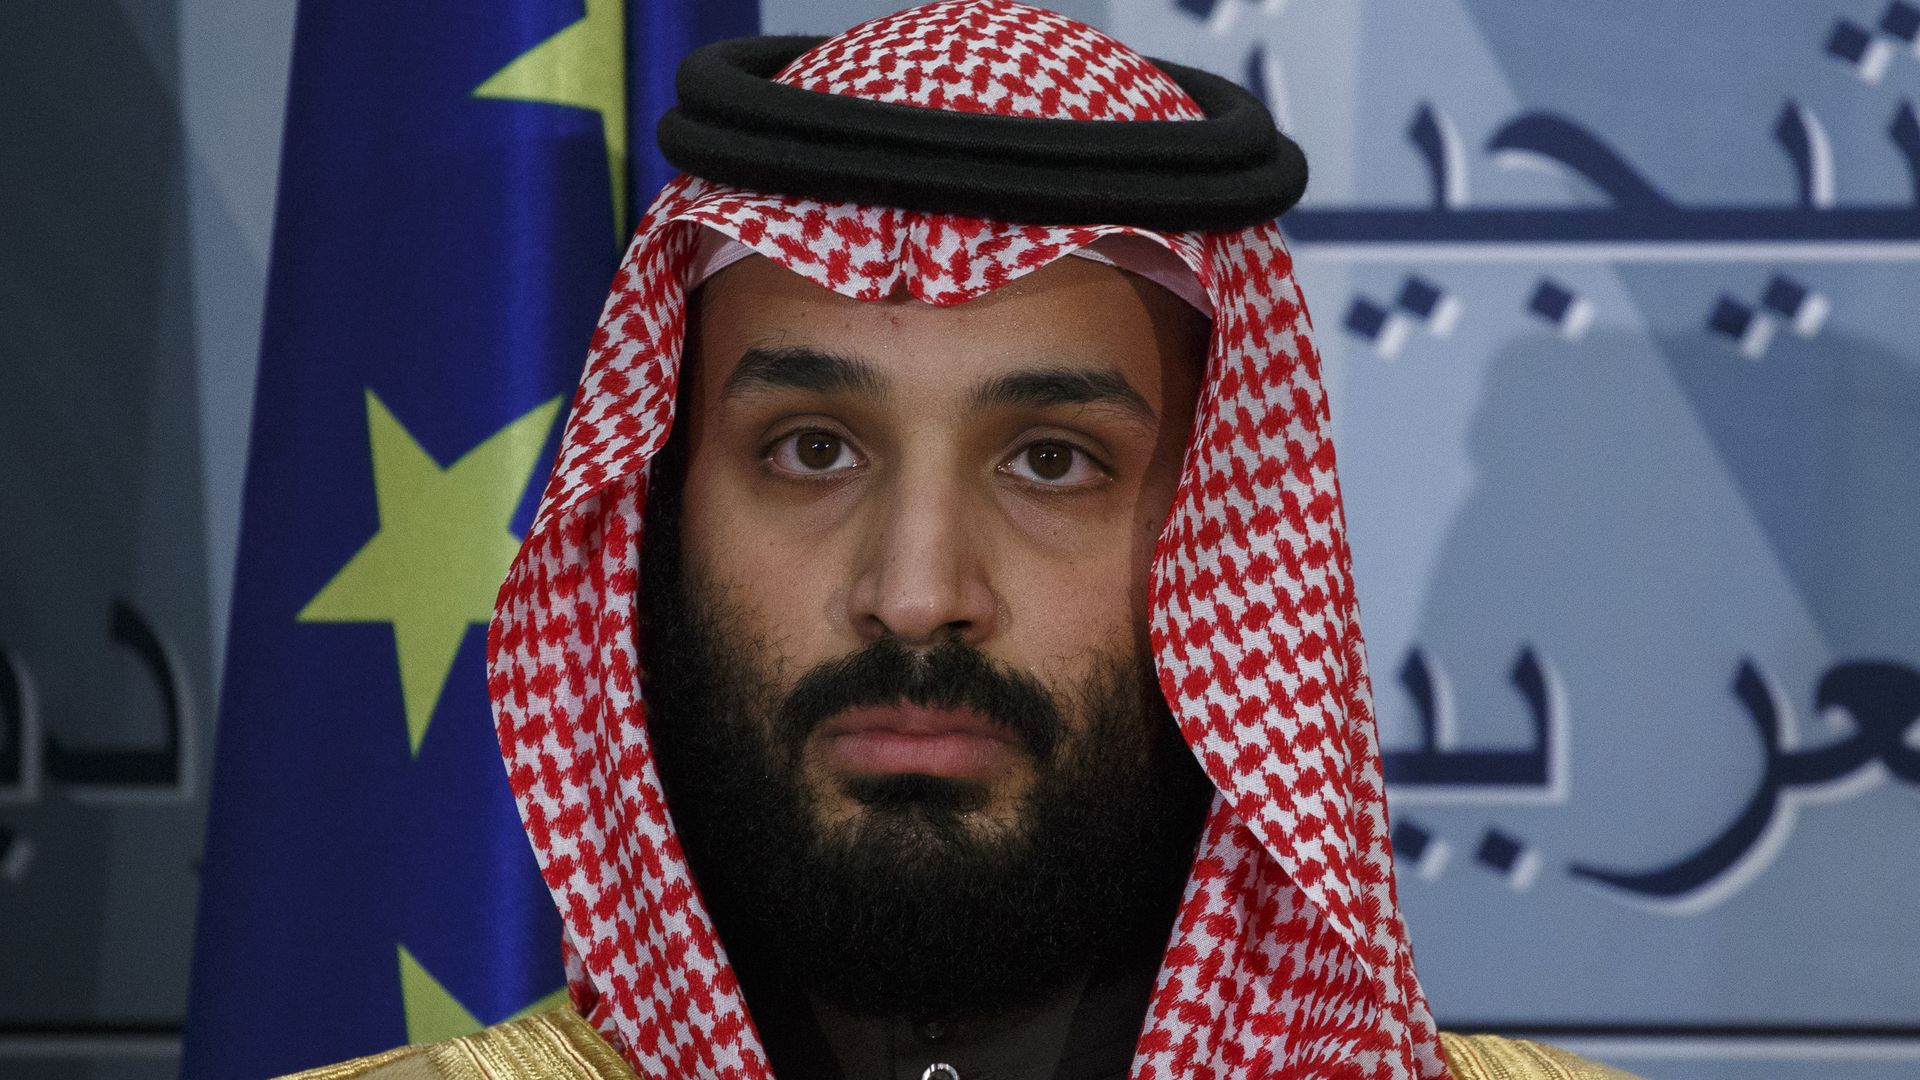 Report: Saudi officials sought to use private companies to kill enemies